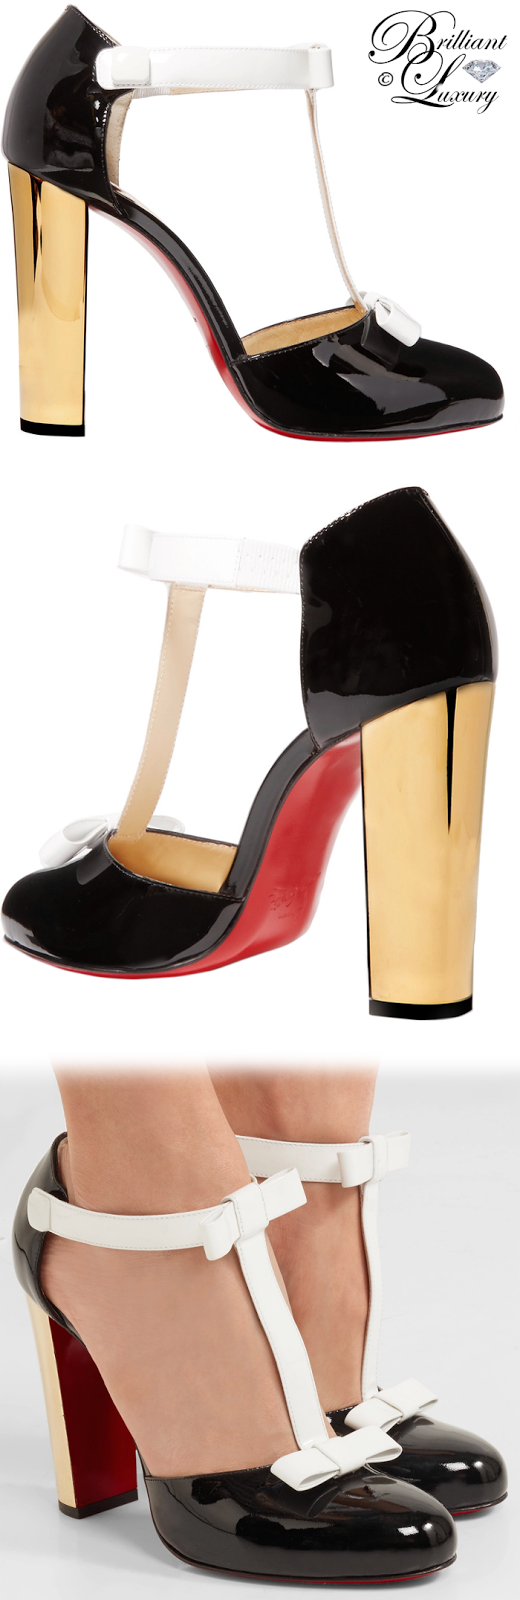 Brilliant Luxury ♦ Christian Louboutin Zerlita Pumps